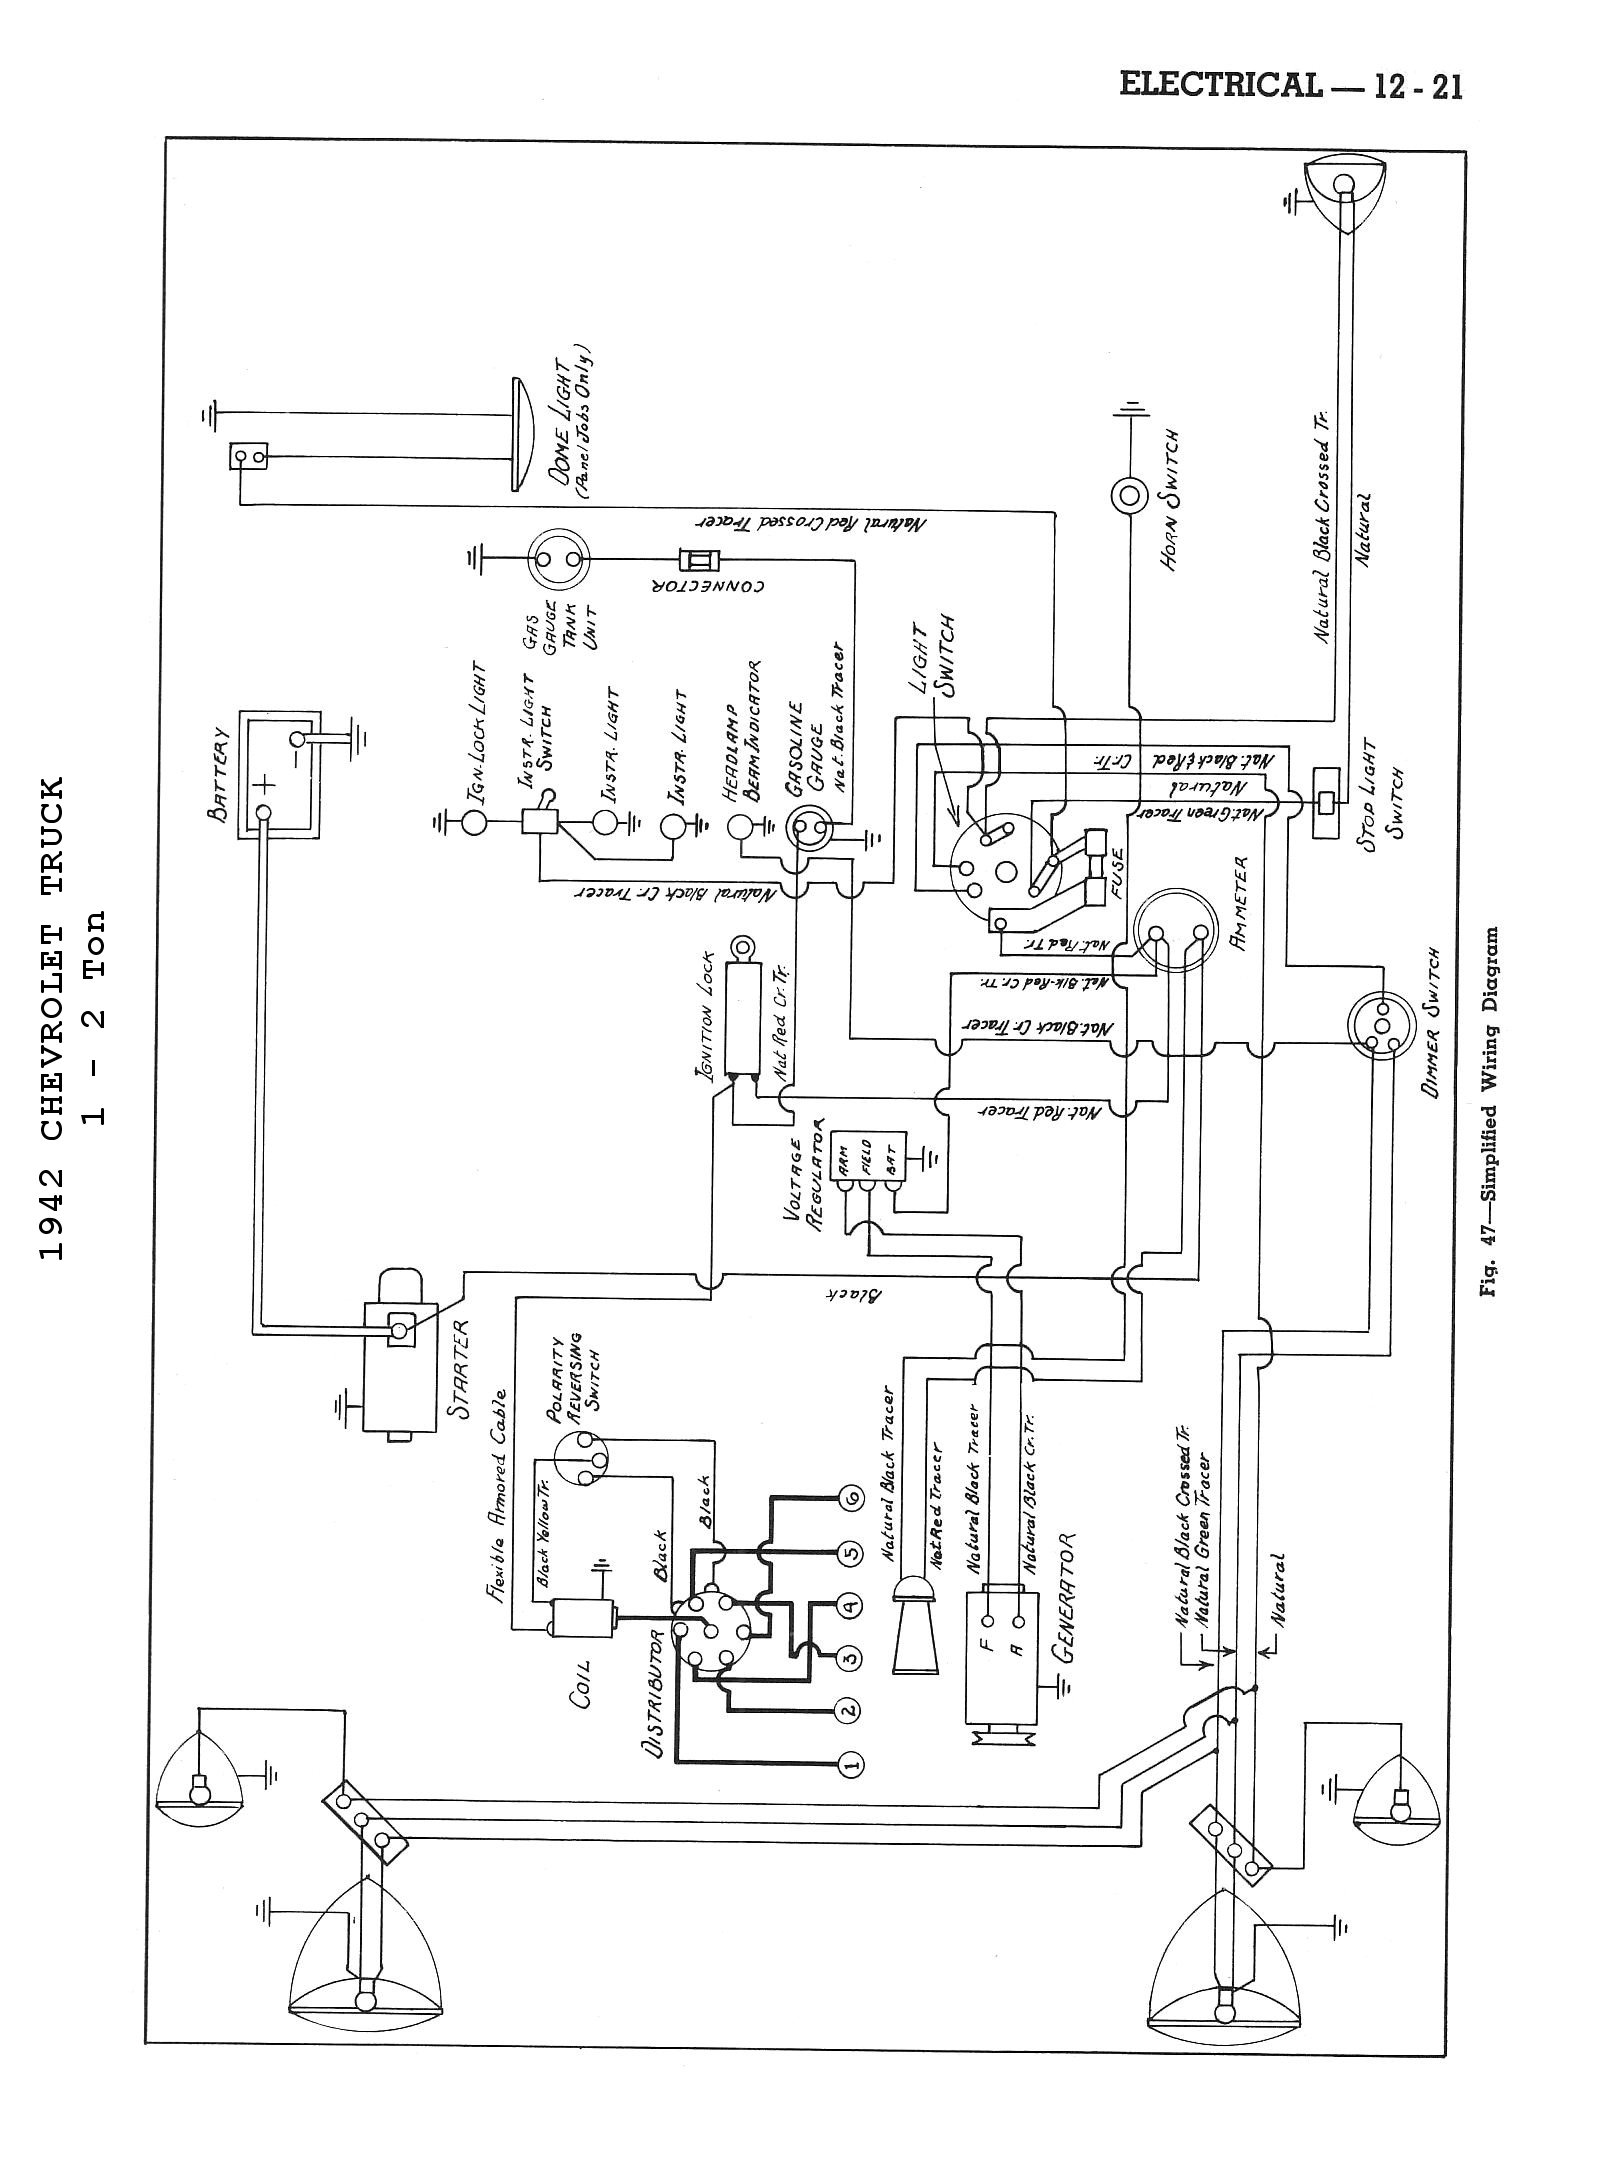 42cm4x2t1221 chevy wiring diagrams 1937 ford wiring diagram at crackthecode.co